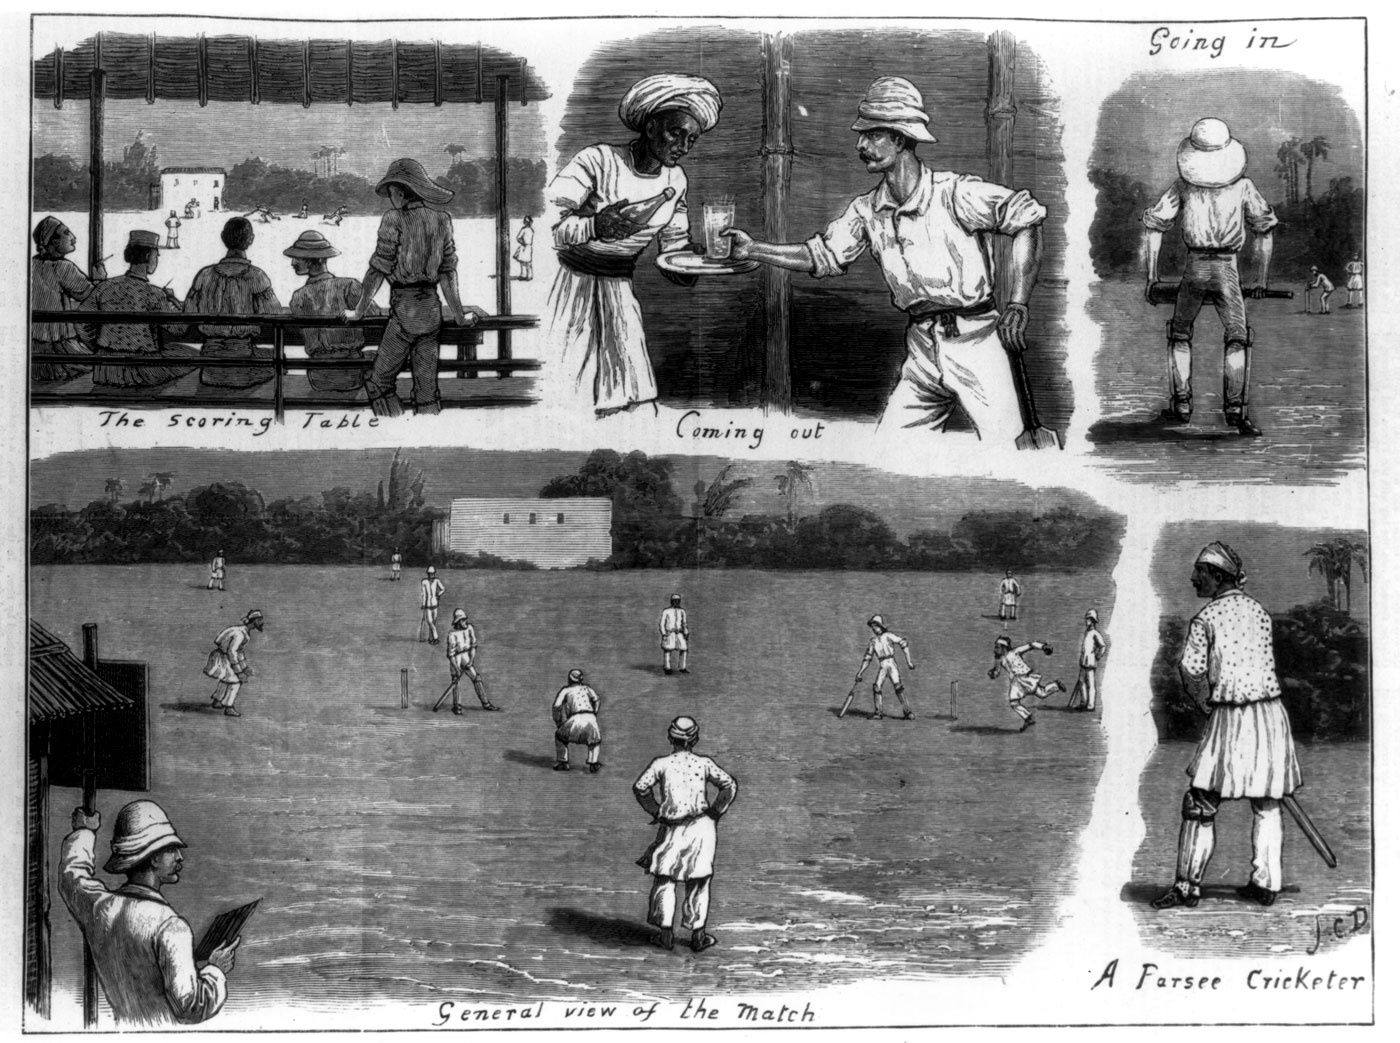 history of cricket in india Best selling cricket books, biography and all different types of cricket reading material including cricket news and cricket history.